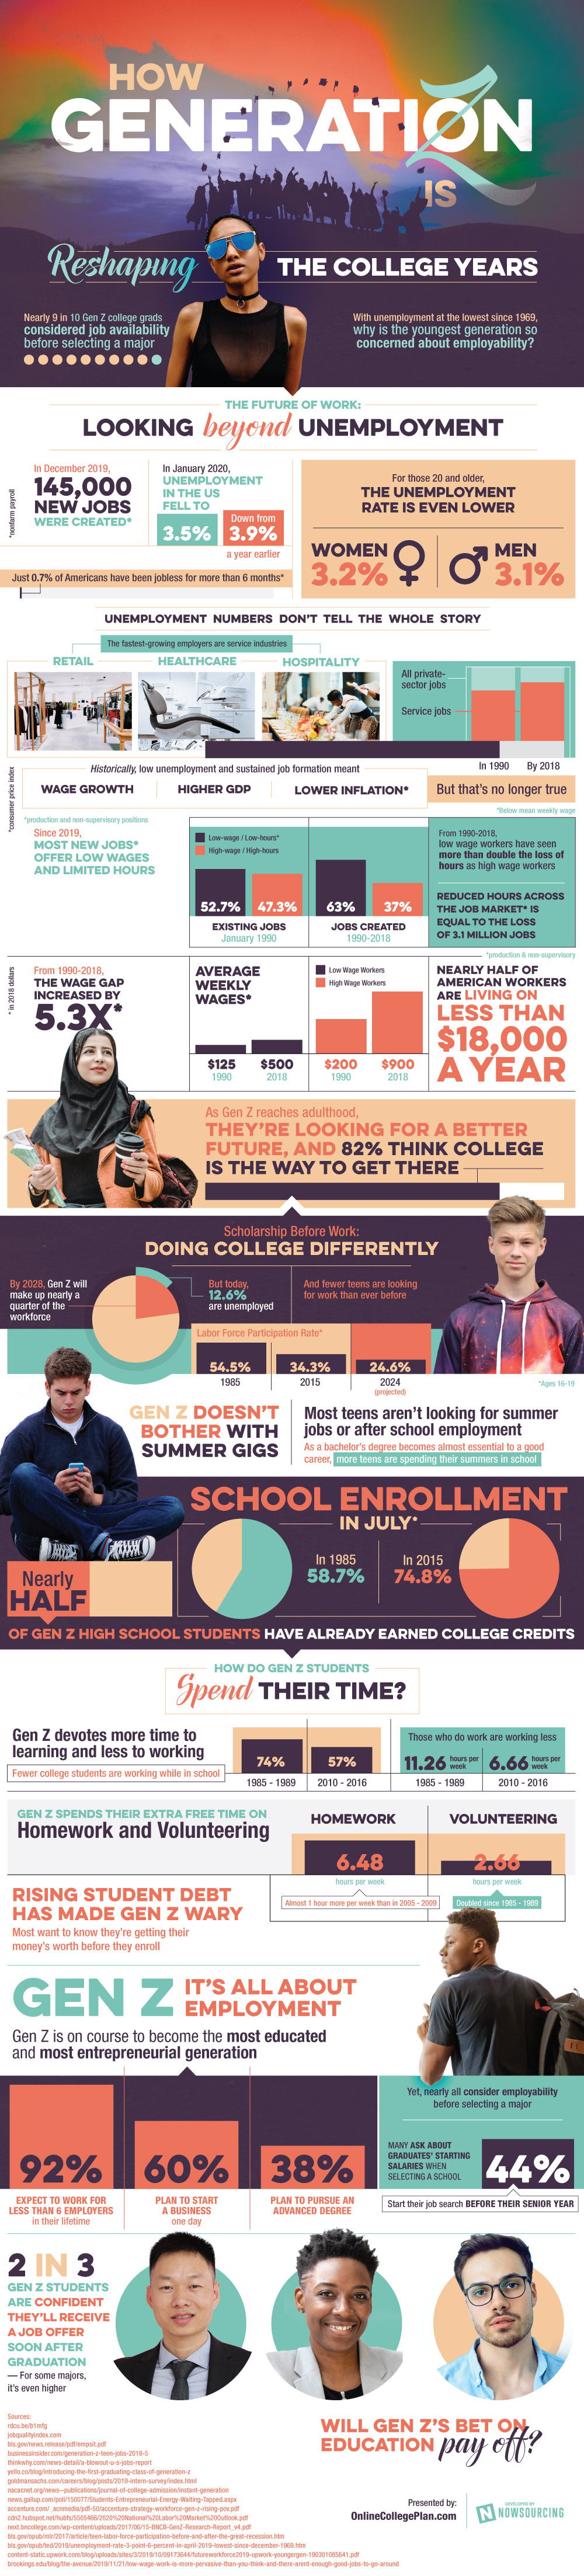 How GenZ Is Doing College and Careers Differently - Infographic